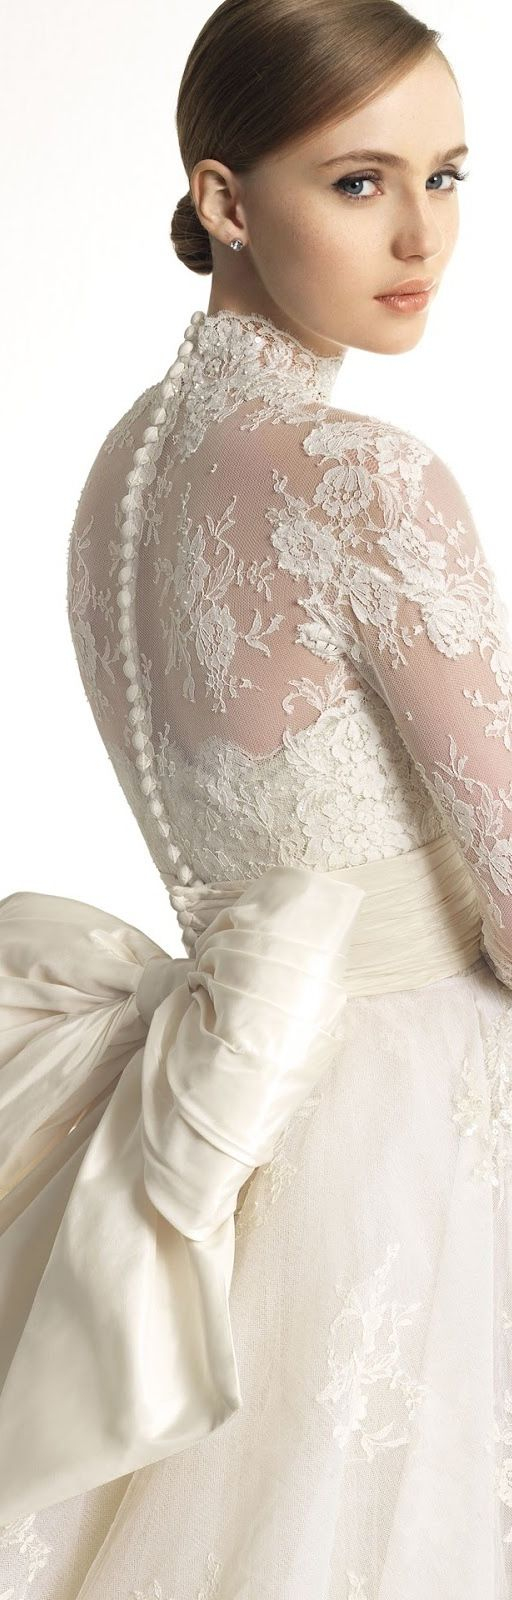 Long sleeve maternity wedding dresses   best From Yes to I Do images on Pinterest  White tent wedding